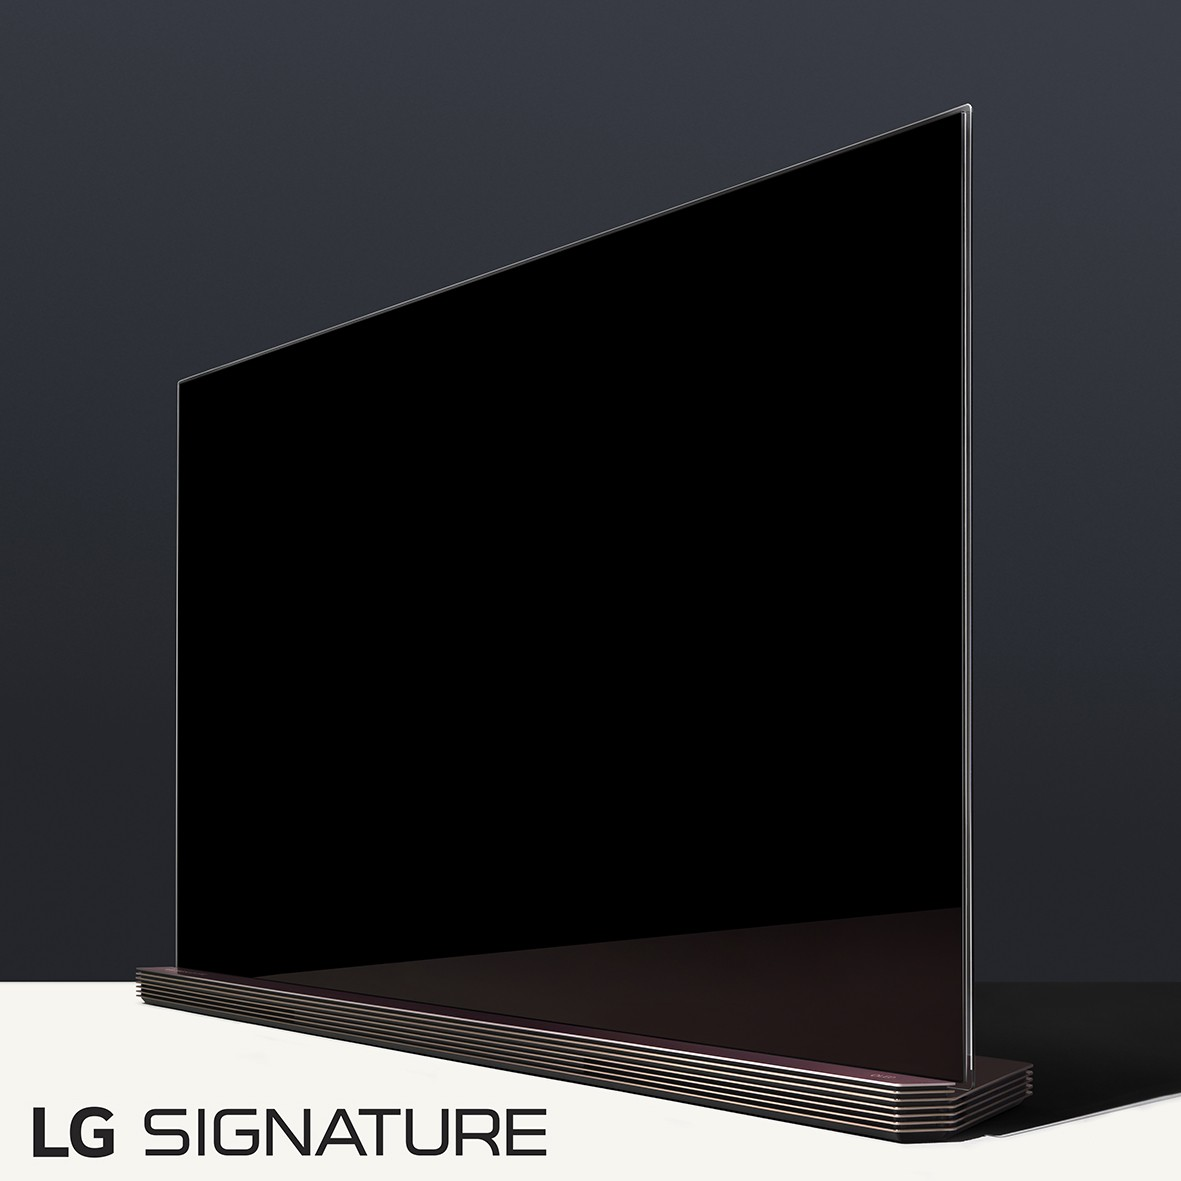 lg to introduce new lg signature brand at ces 2016 lg. Black Bedroom Furniture Sets. Home Design Ideas